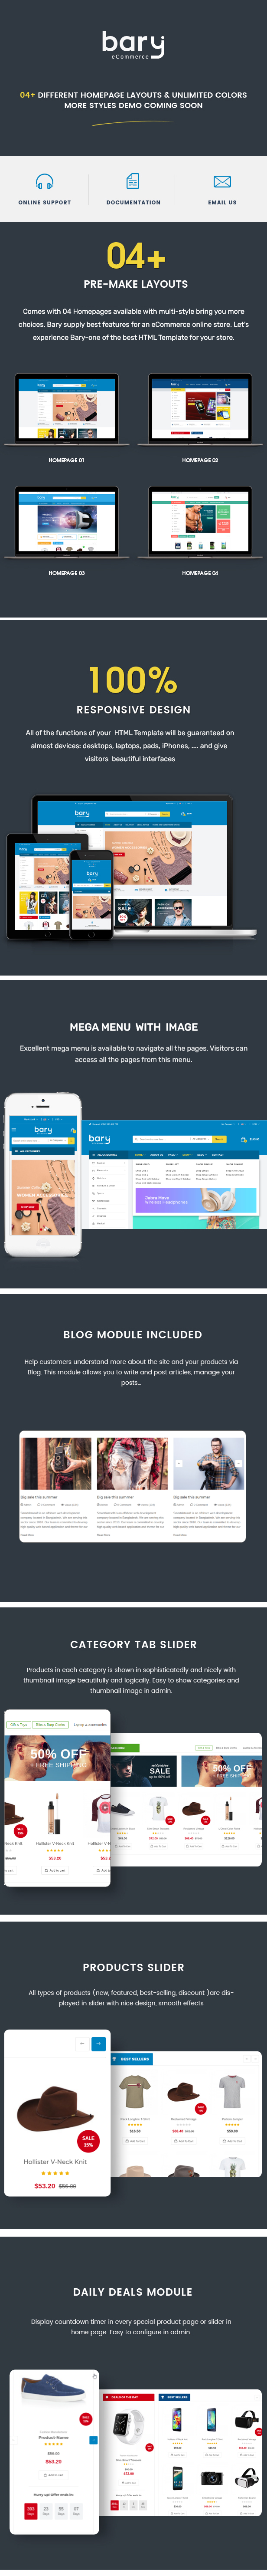 Bary - Responsive eCommerce HTML Template - 1